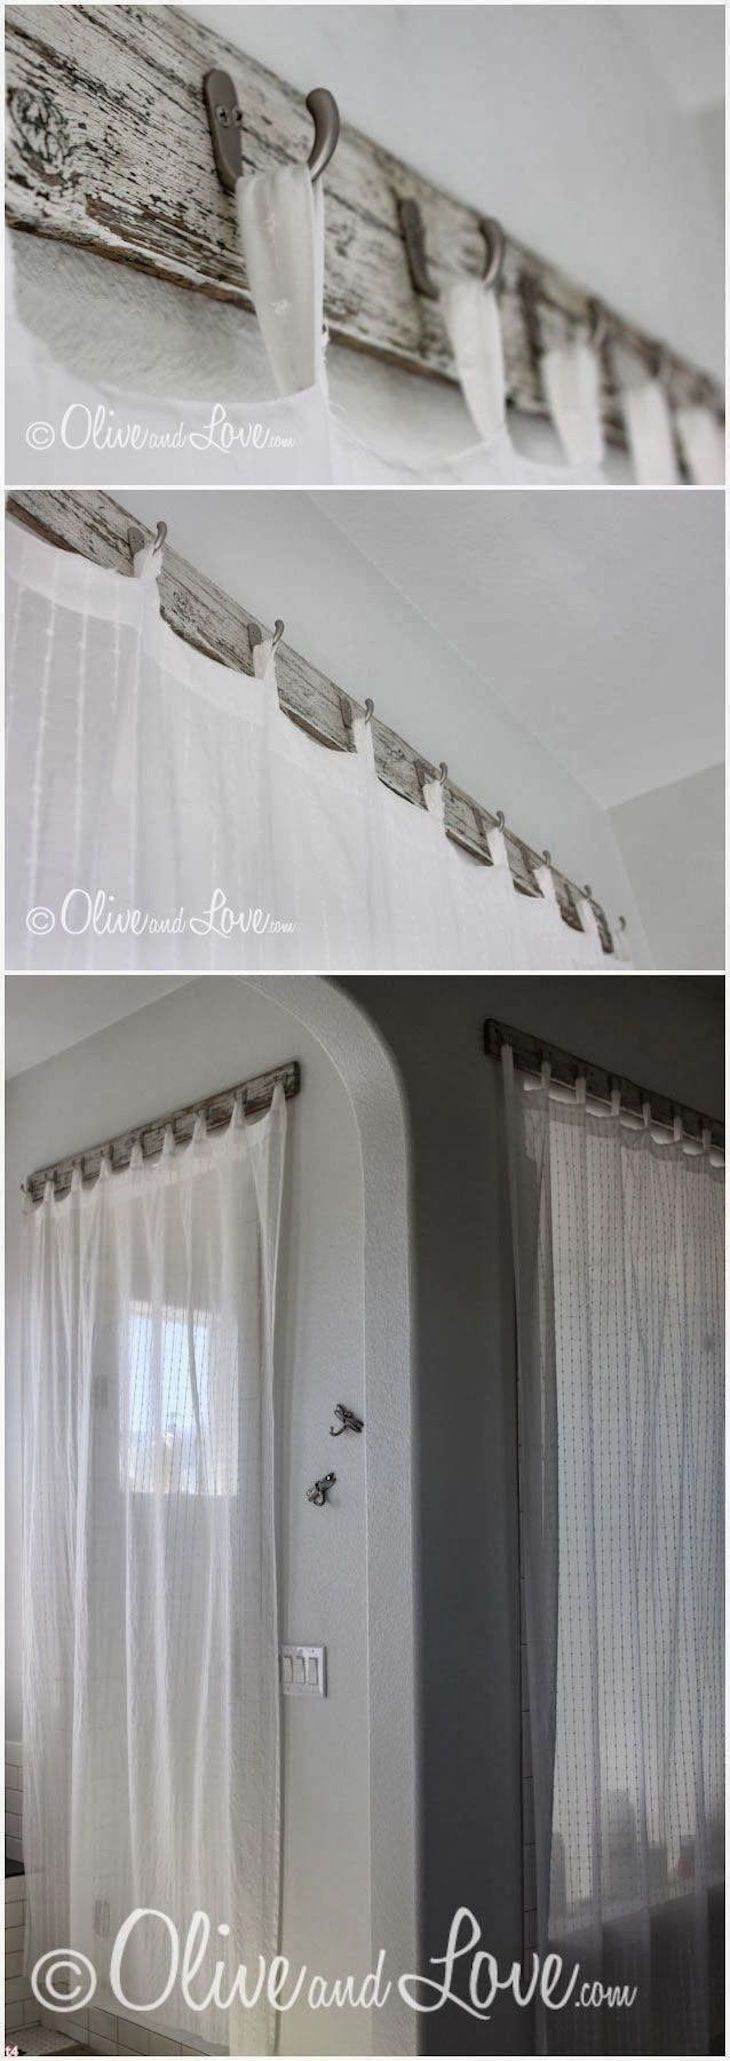 Diy bathroom curtain ideas - Top 10 Decorative Diy Curtain Designs